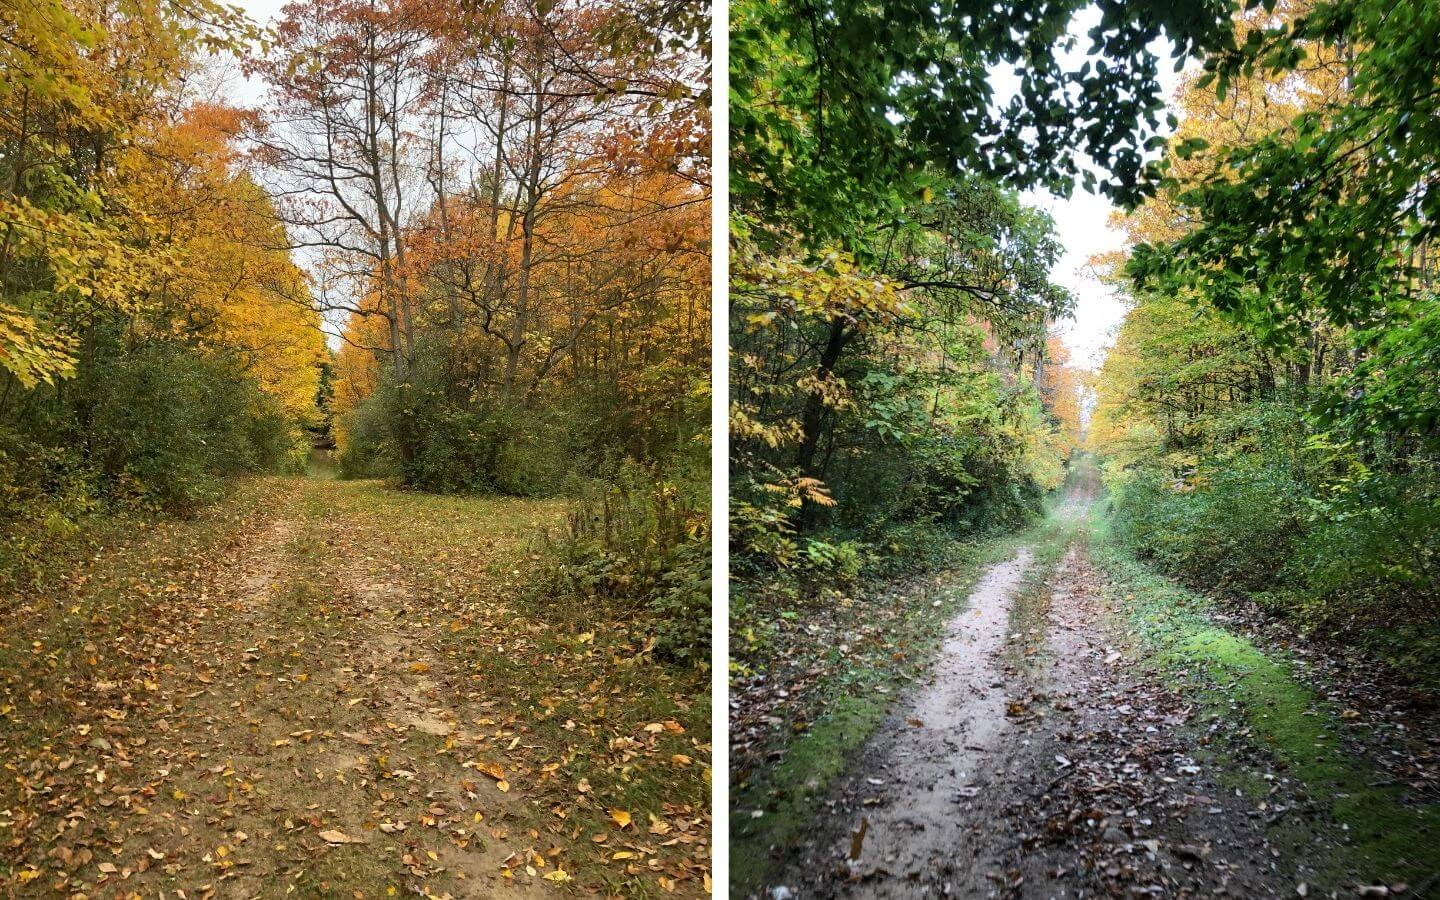 Two views of The Castle's hiking trails in the woods with trees in shades of green, yellow and orange